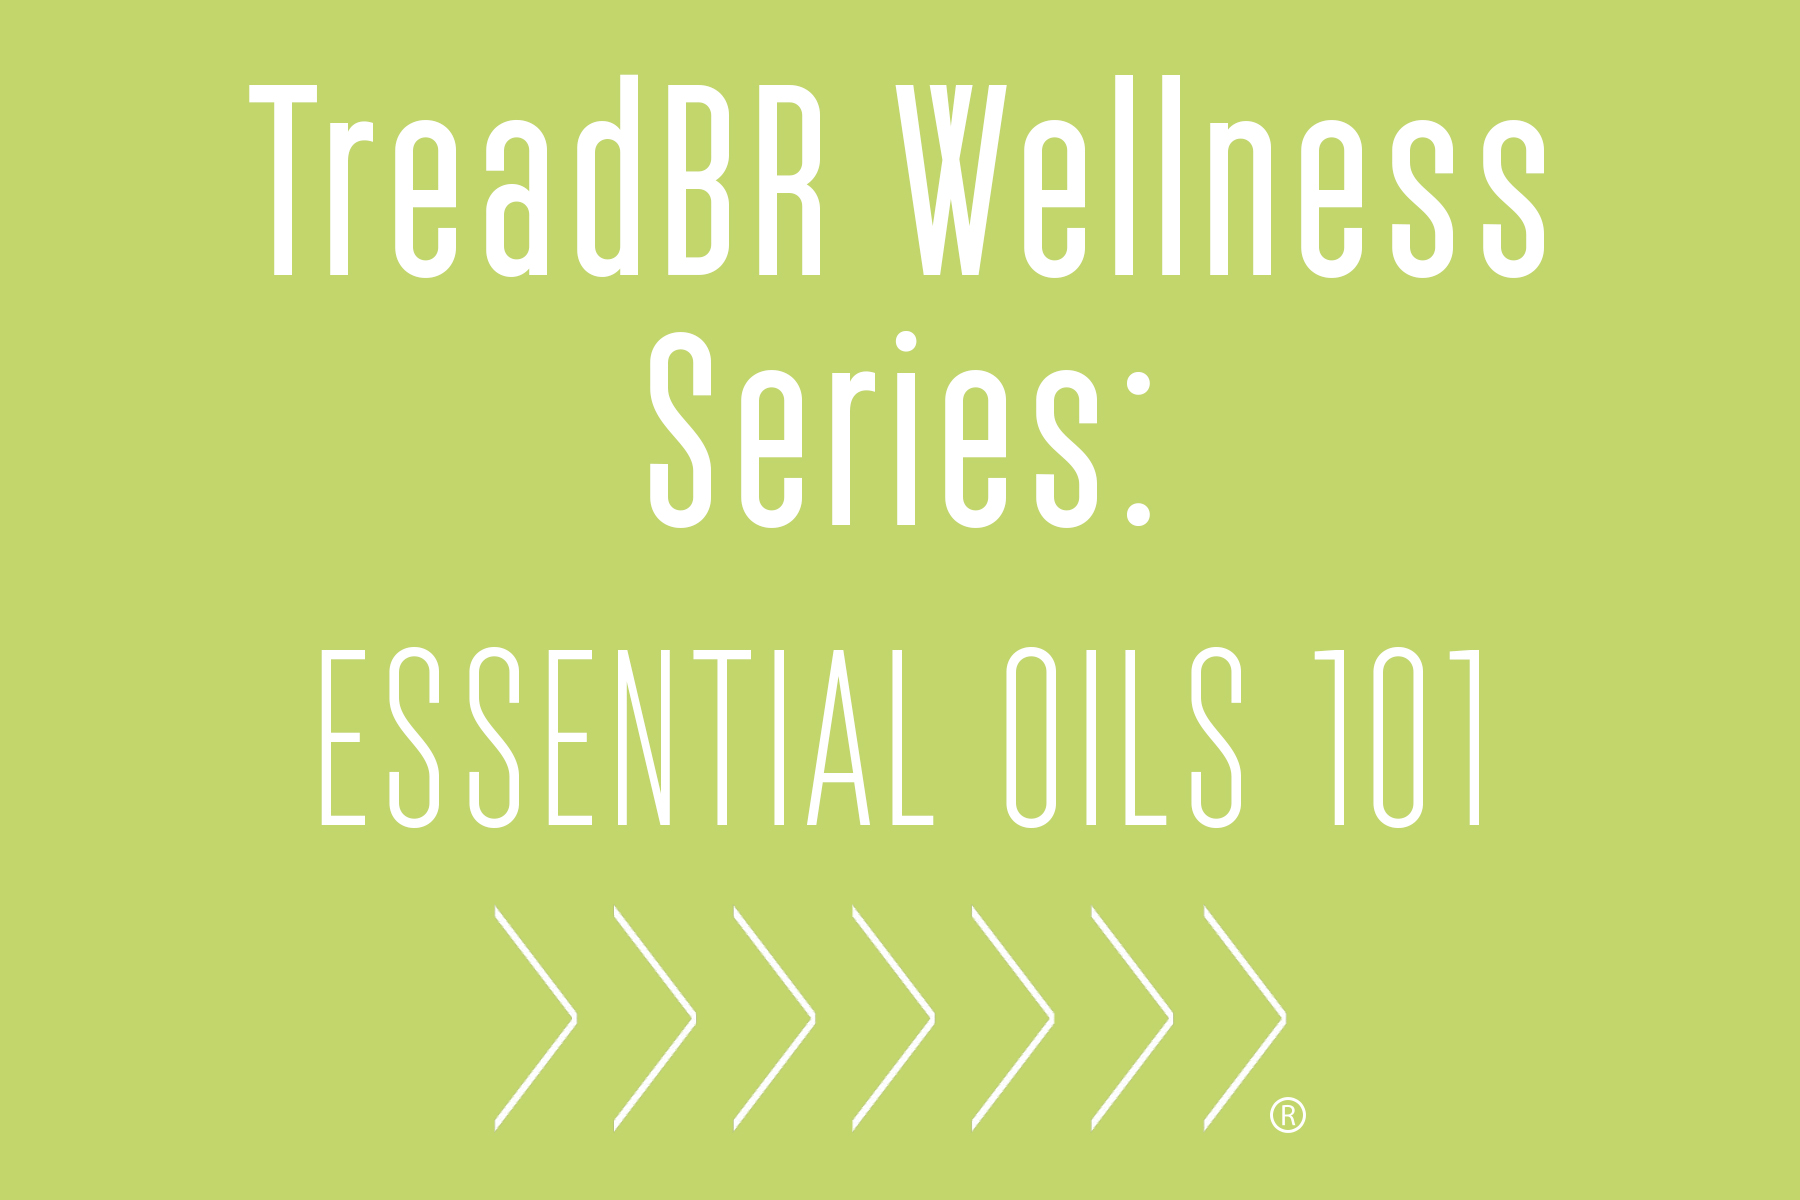 Join us on Wednesday, March 15 for an Essential Oils 101 seminar. We will go over the basics of using essential oils, plus some tips for incorporating oils into your daily exercise routine. Can't join us at the studio? No worries, you can catch the whole thing on Facebook Live!